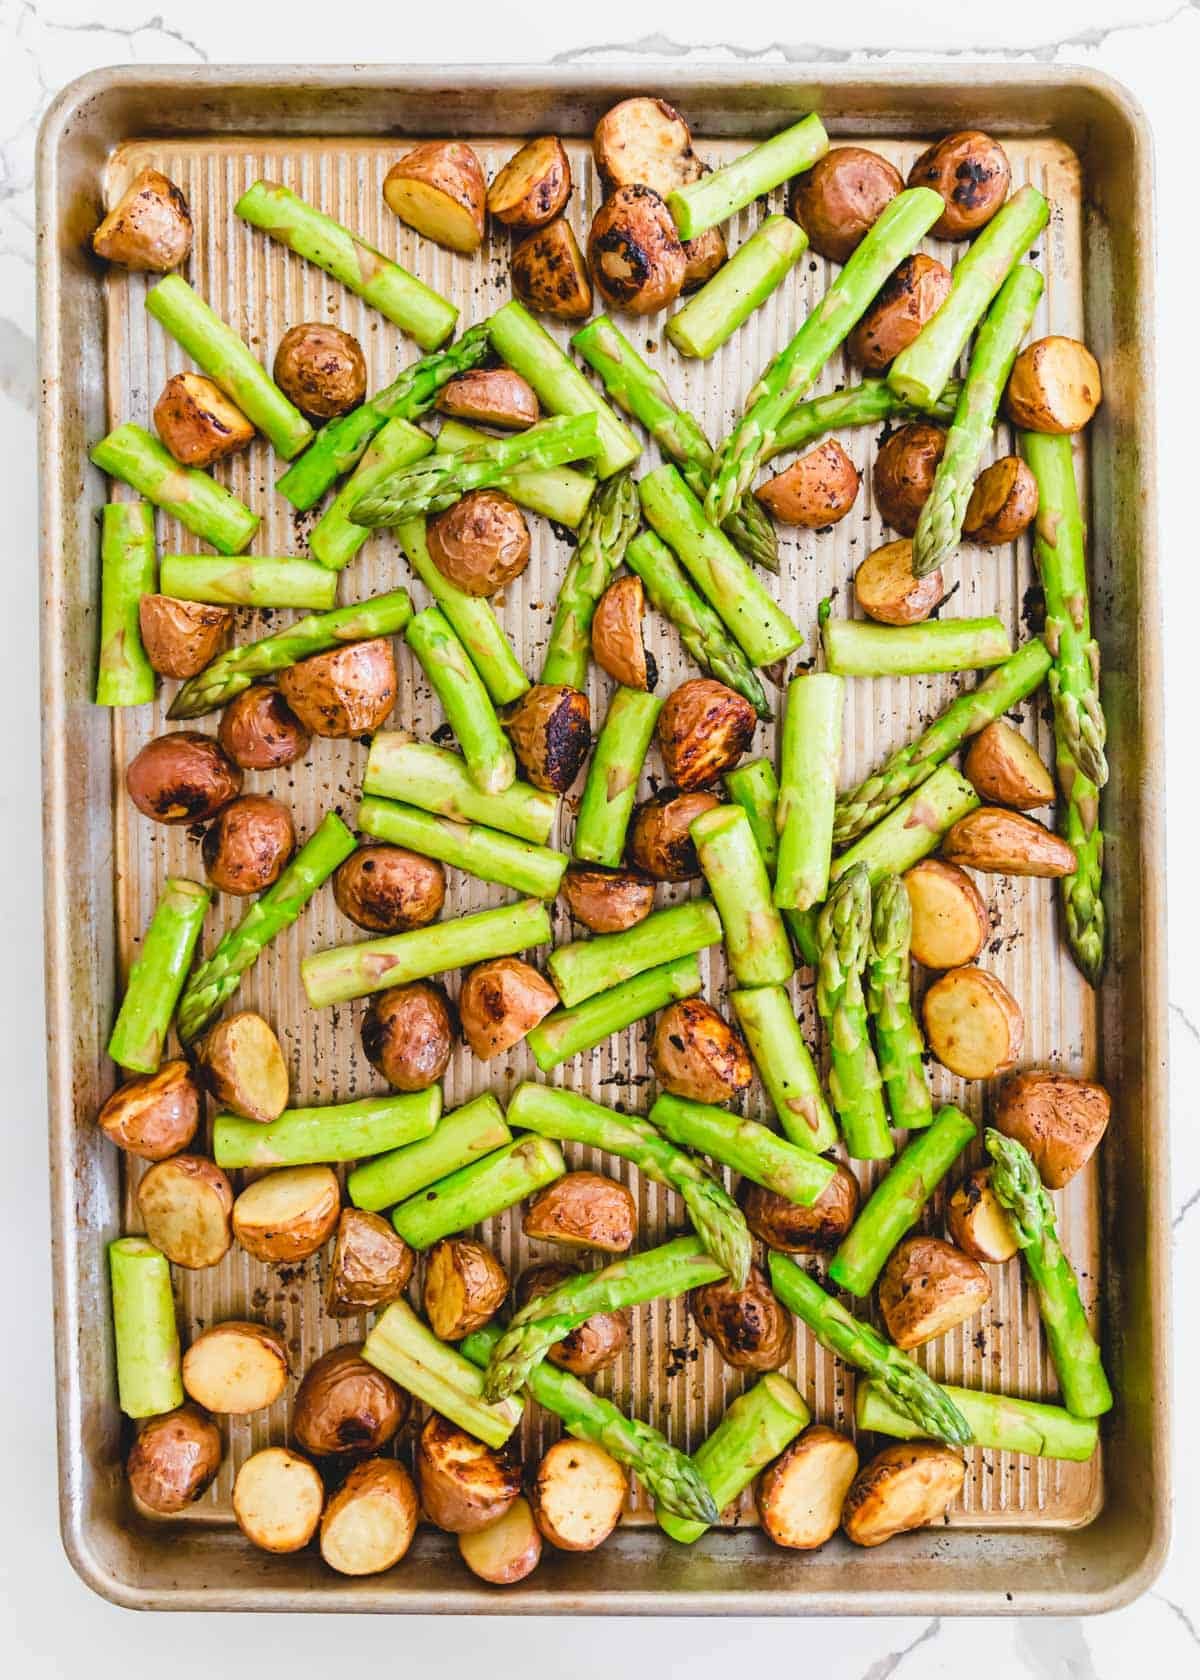 roasted red potatoes with fresh asparagus spears on a baking sheet